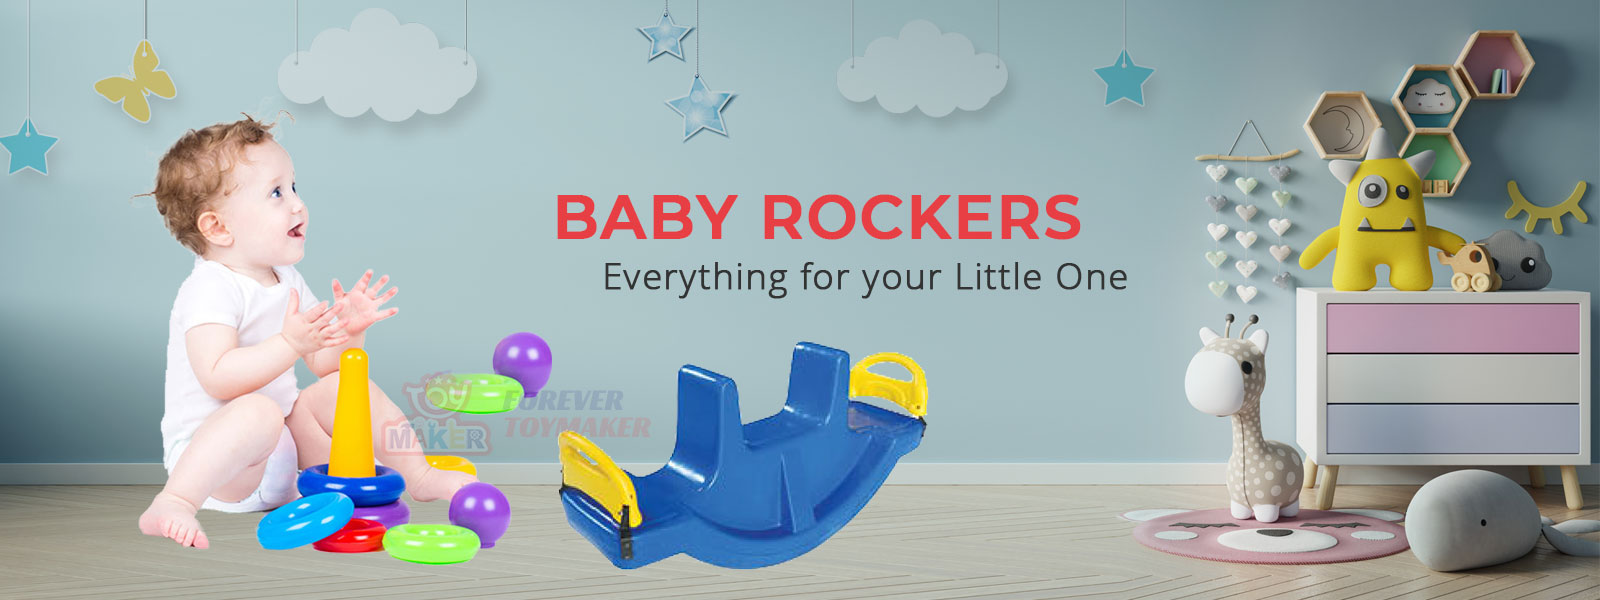 Baby Rockers Manufacturers in Meerut